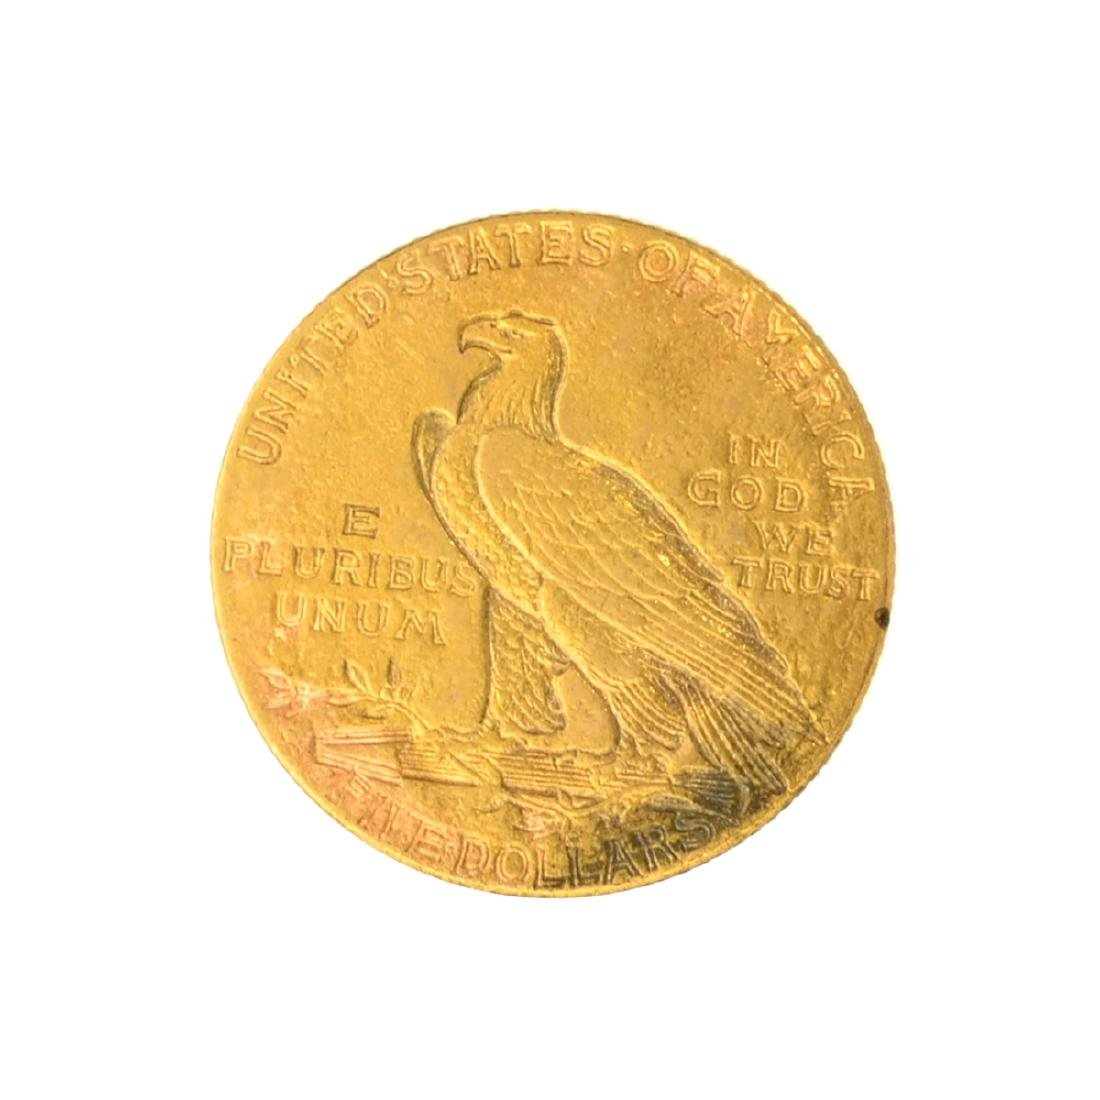 *1911 $5 U.S. Indian Head Gold Coin - Great Investment - 2